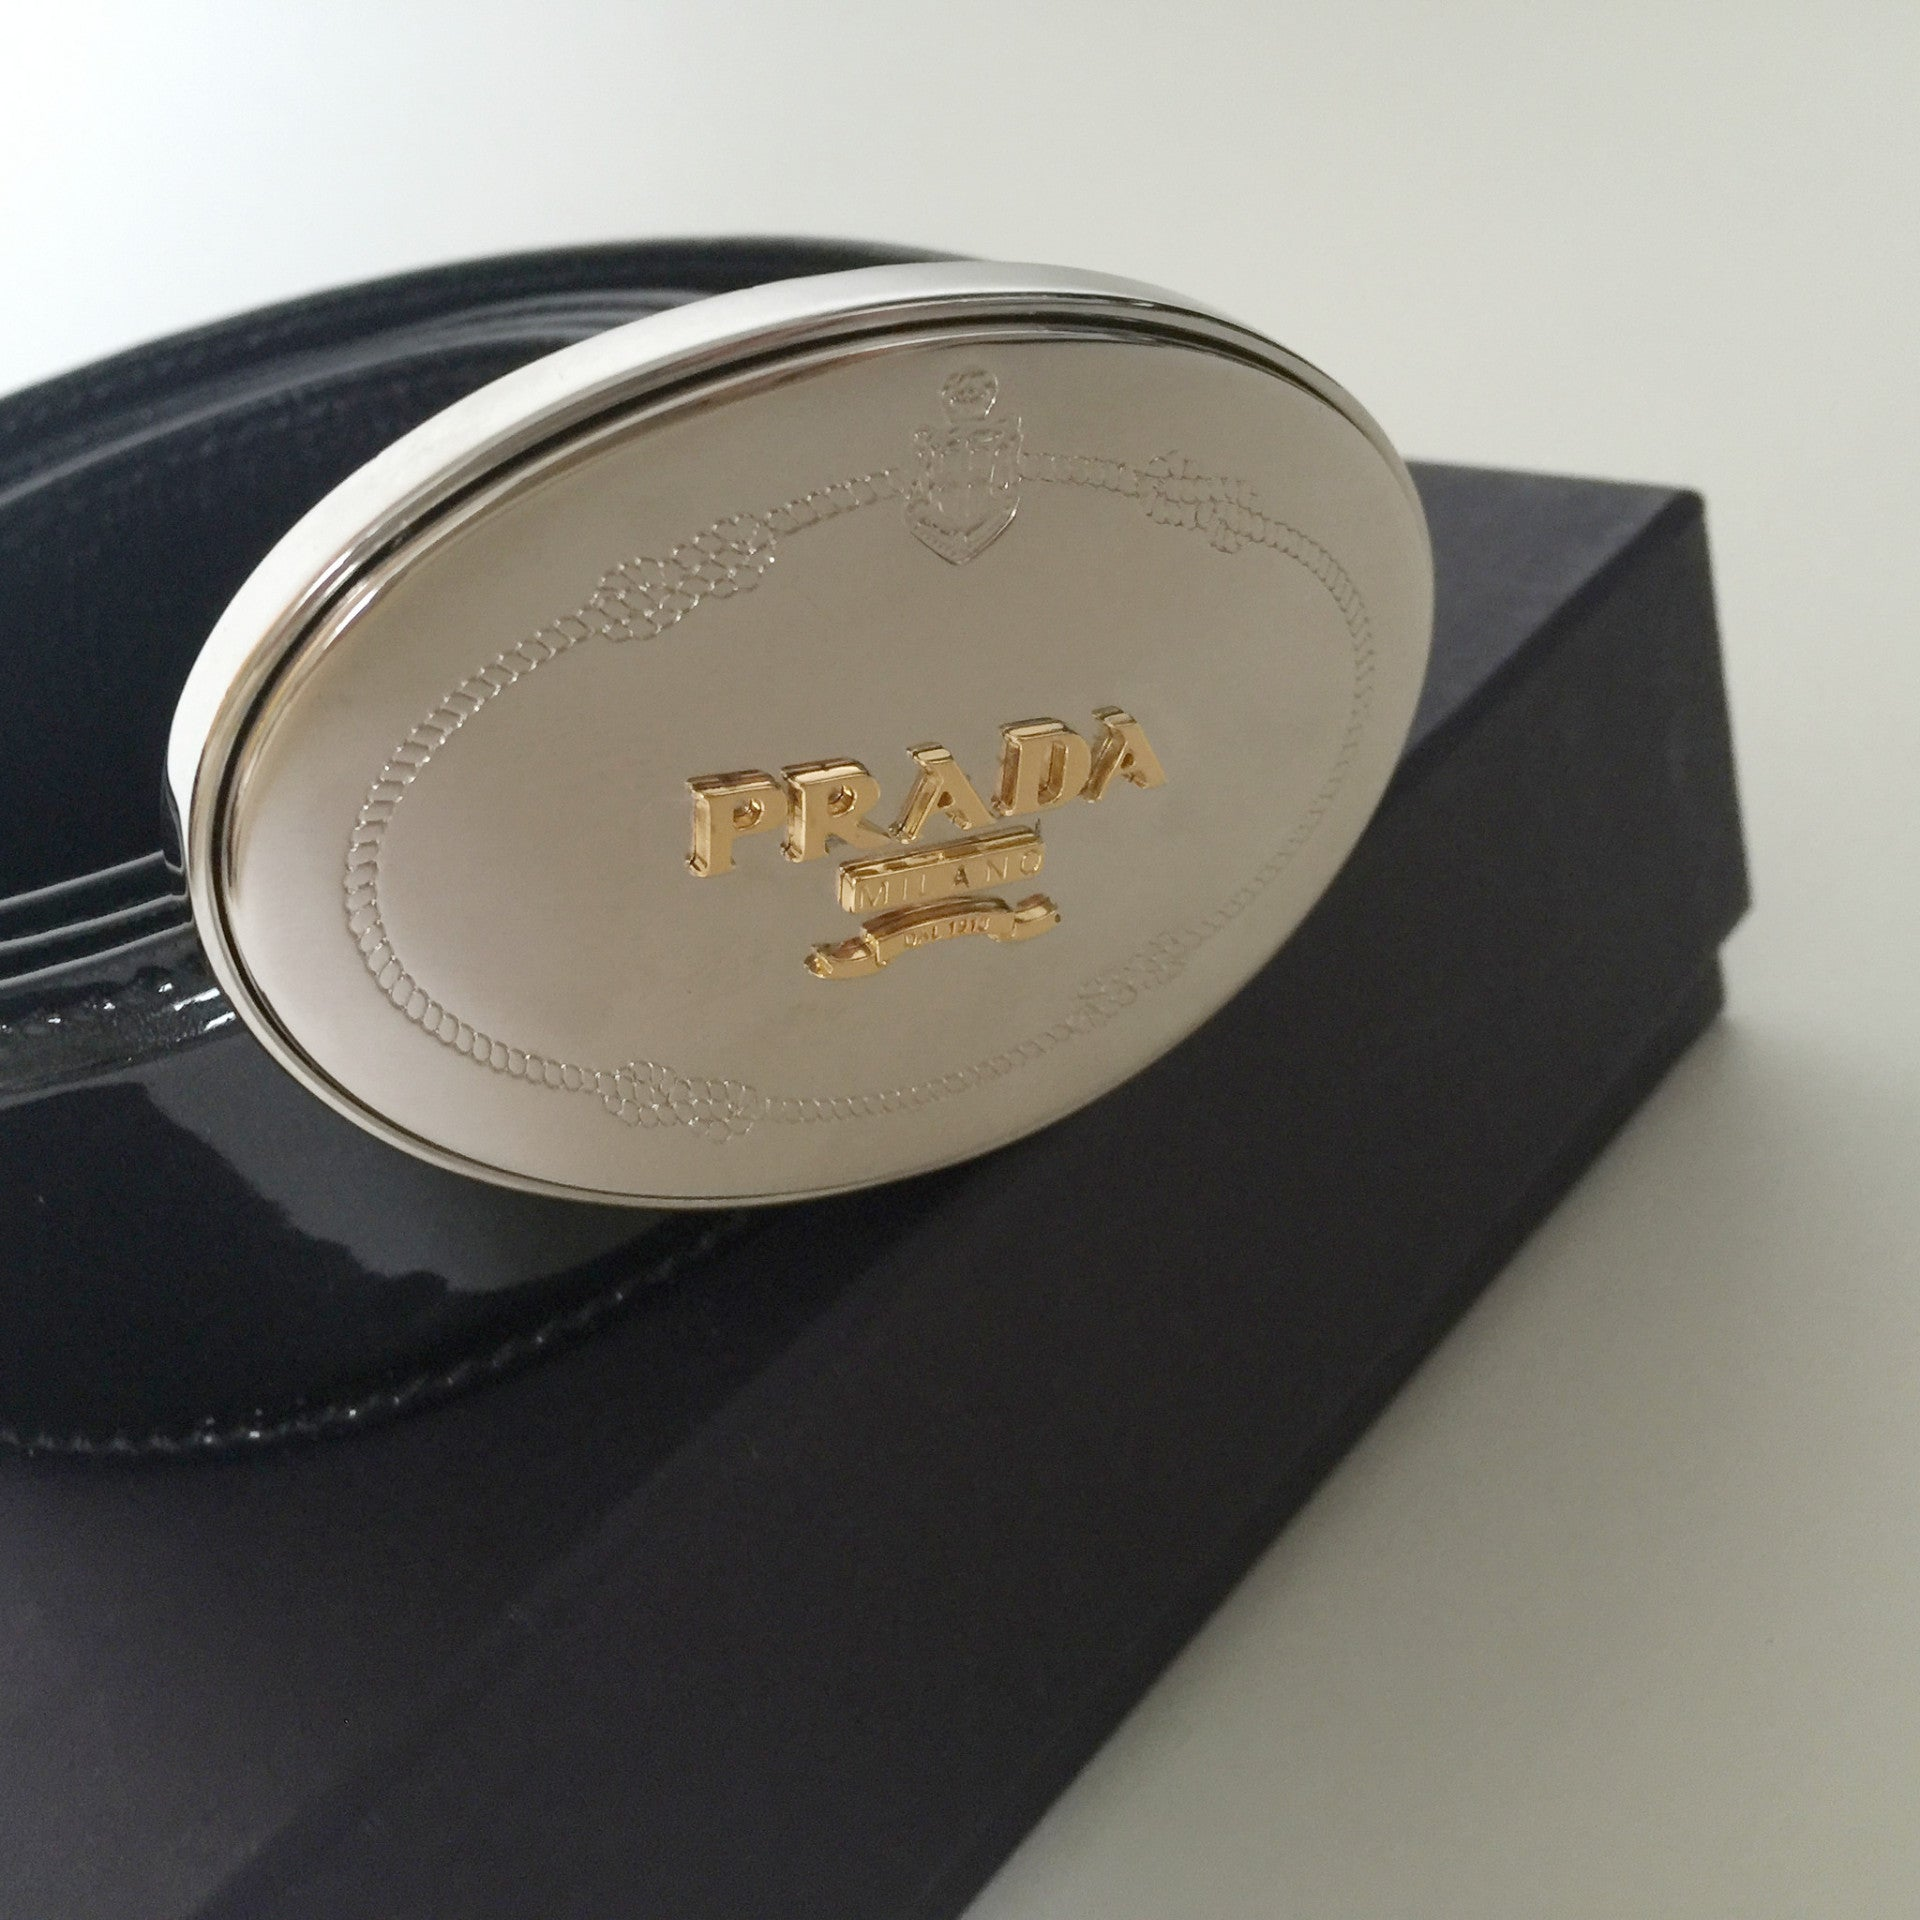 Authentic PRADA Black Patent Belt